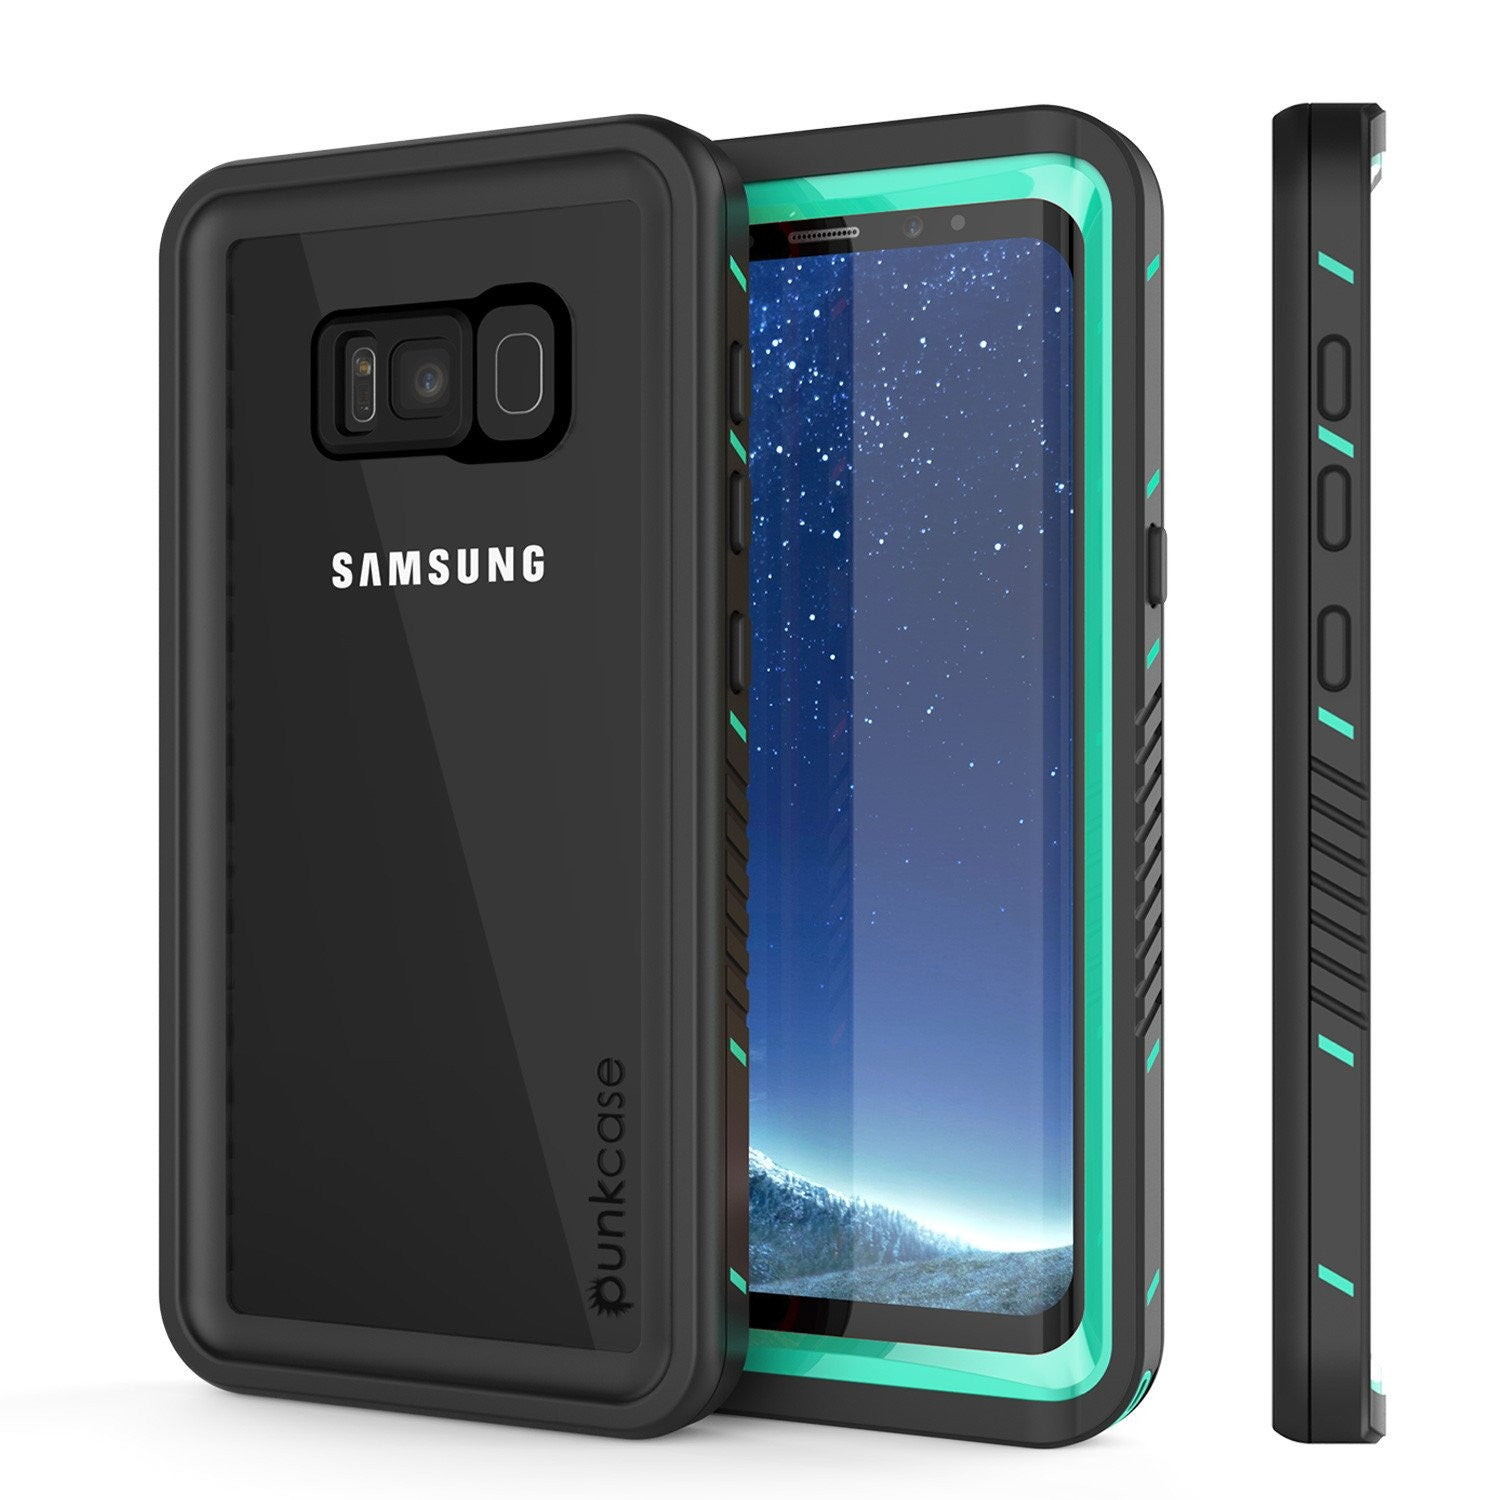 Galaxy S8 PLUS Waterproof Case, Punkcase [Extreme Series] [Slim Fit] [IP68 Certified] [Shockproof] [Snowproof] [Dirproof] Armor Cover W/ Built In Screen Protector for Samsung Galaxy S8+ [Teal]